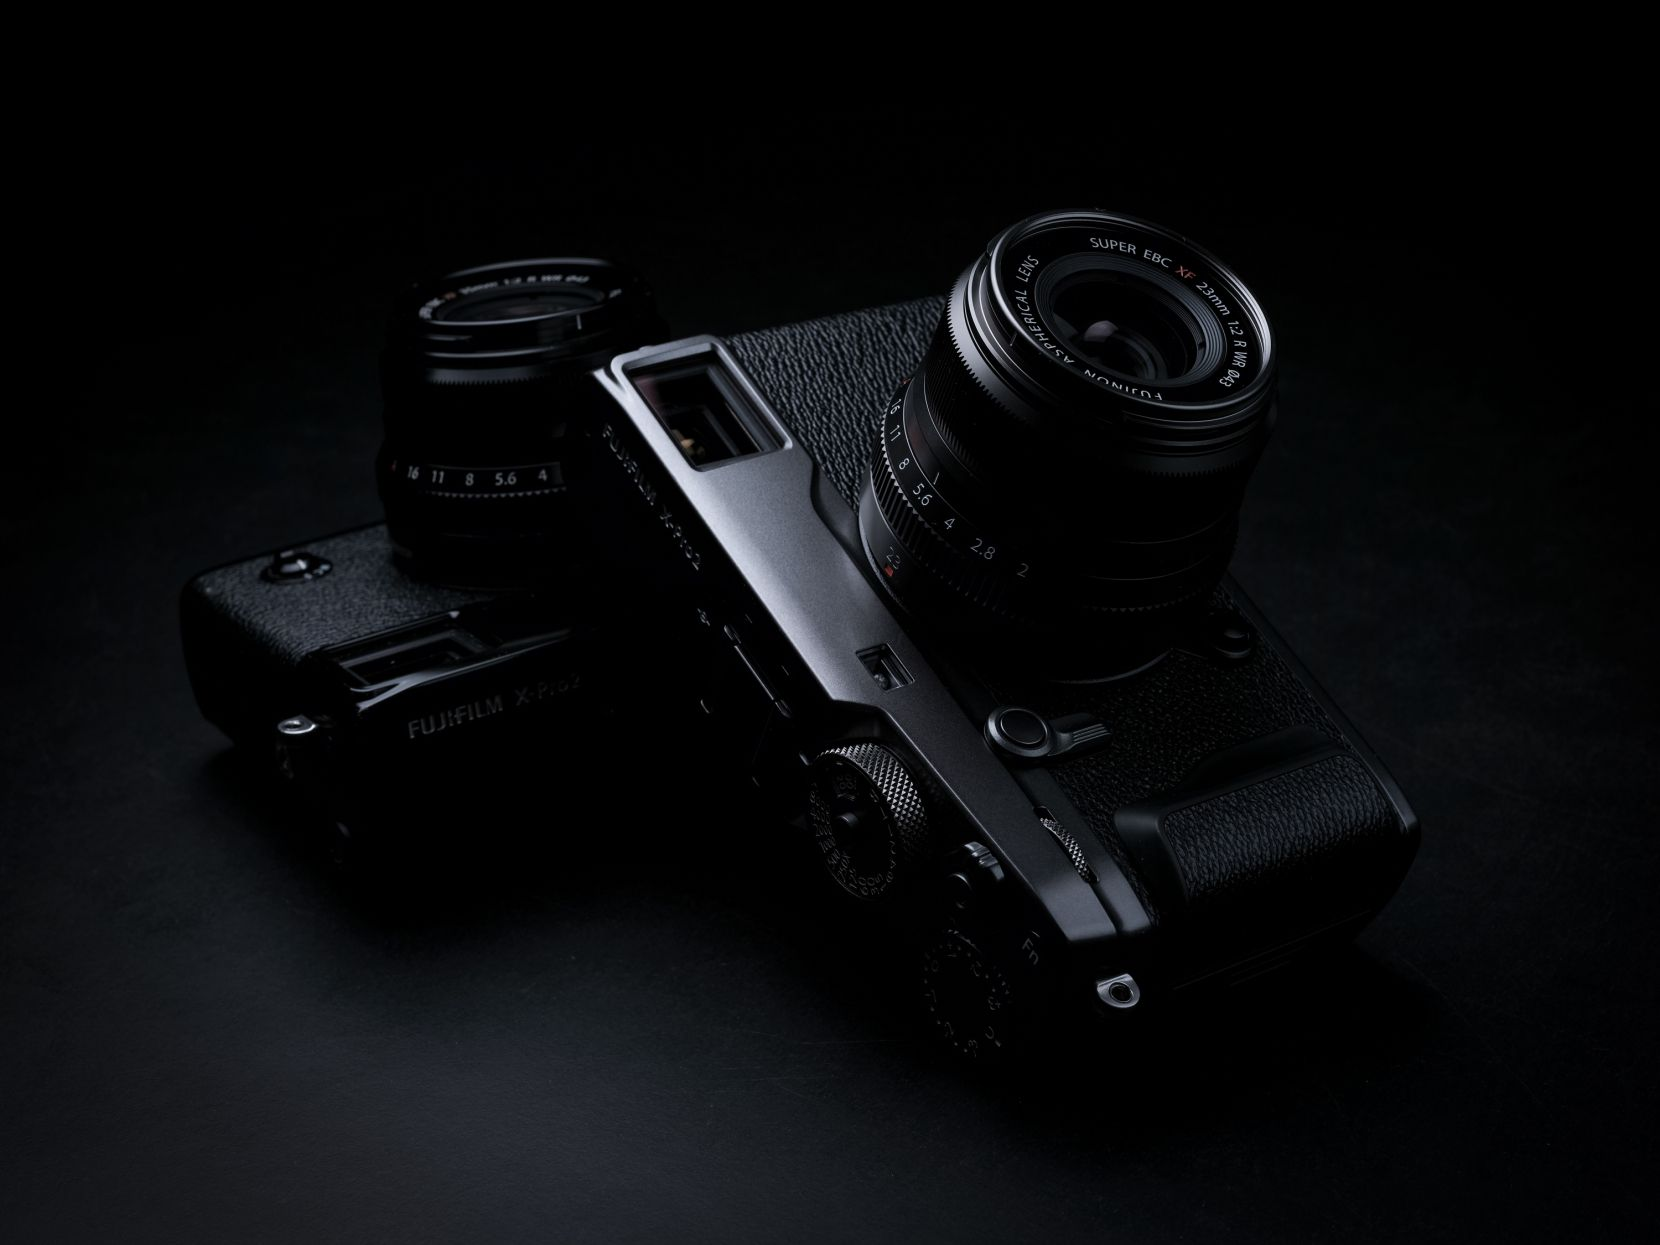 Fujifilm X-PRO2 + XF23mm f/2.0 Graphite edition